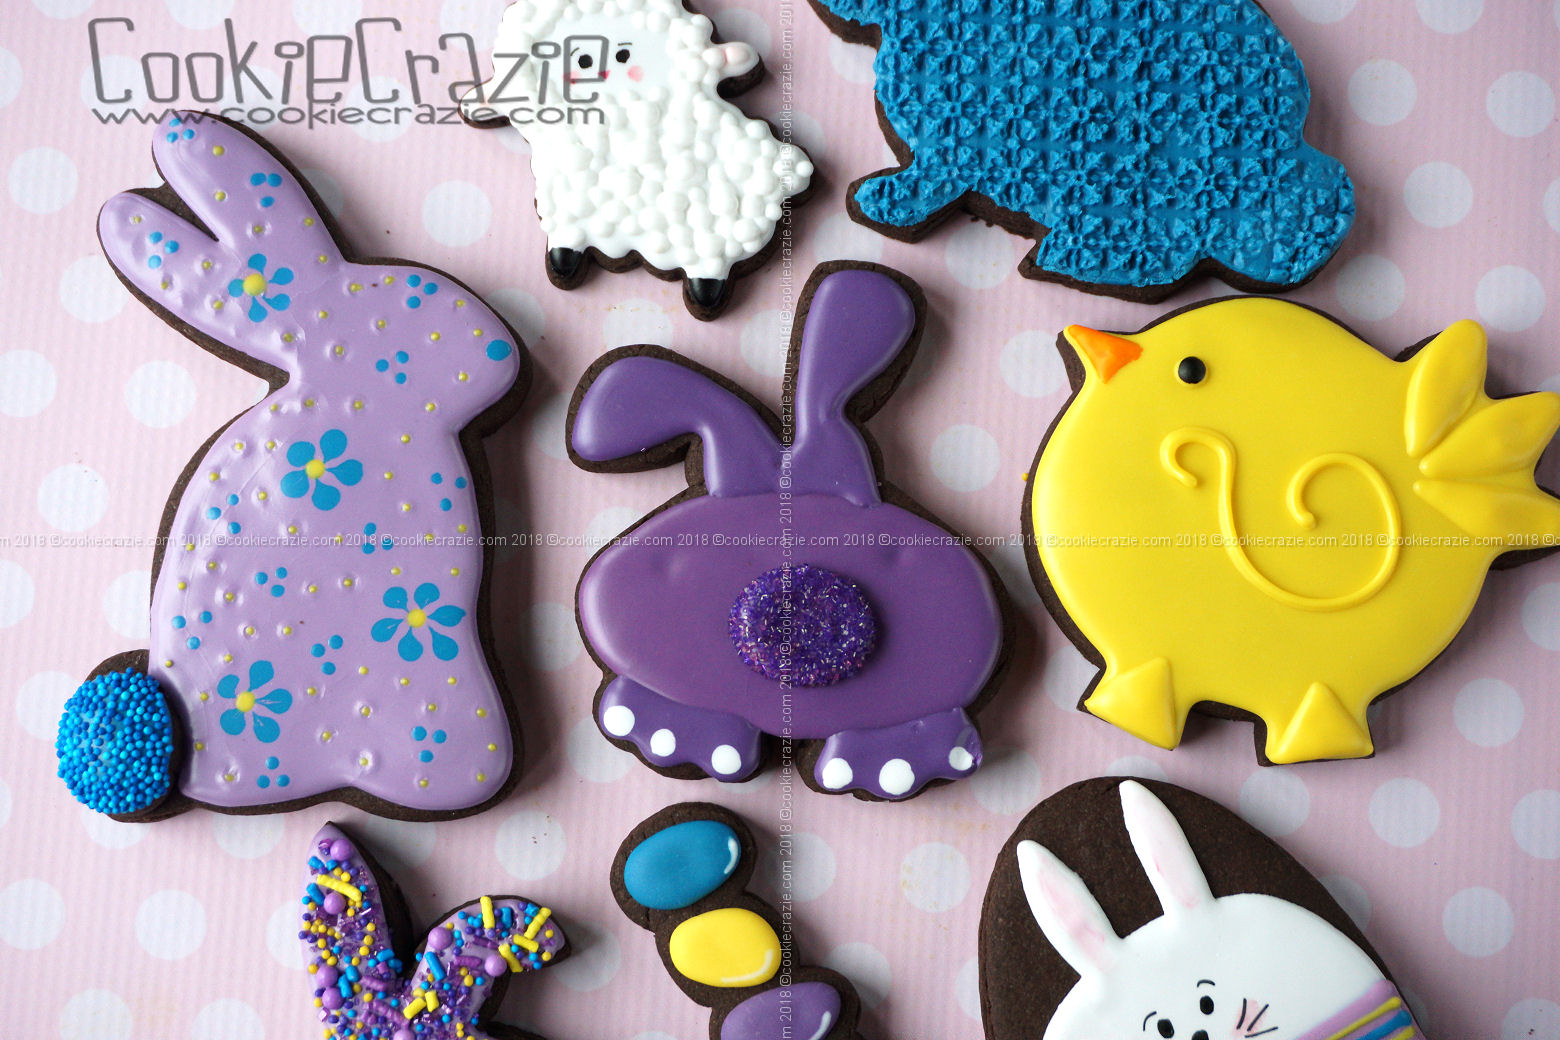 Bunny Bum Decorated Sugar Cookie YouTube video  HERE  Bunny cutter found  HERE